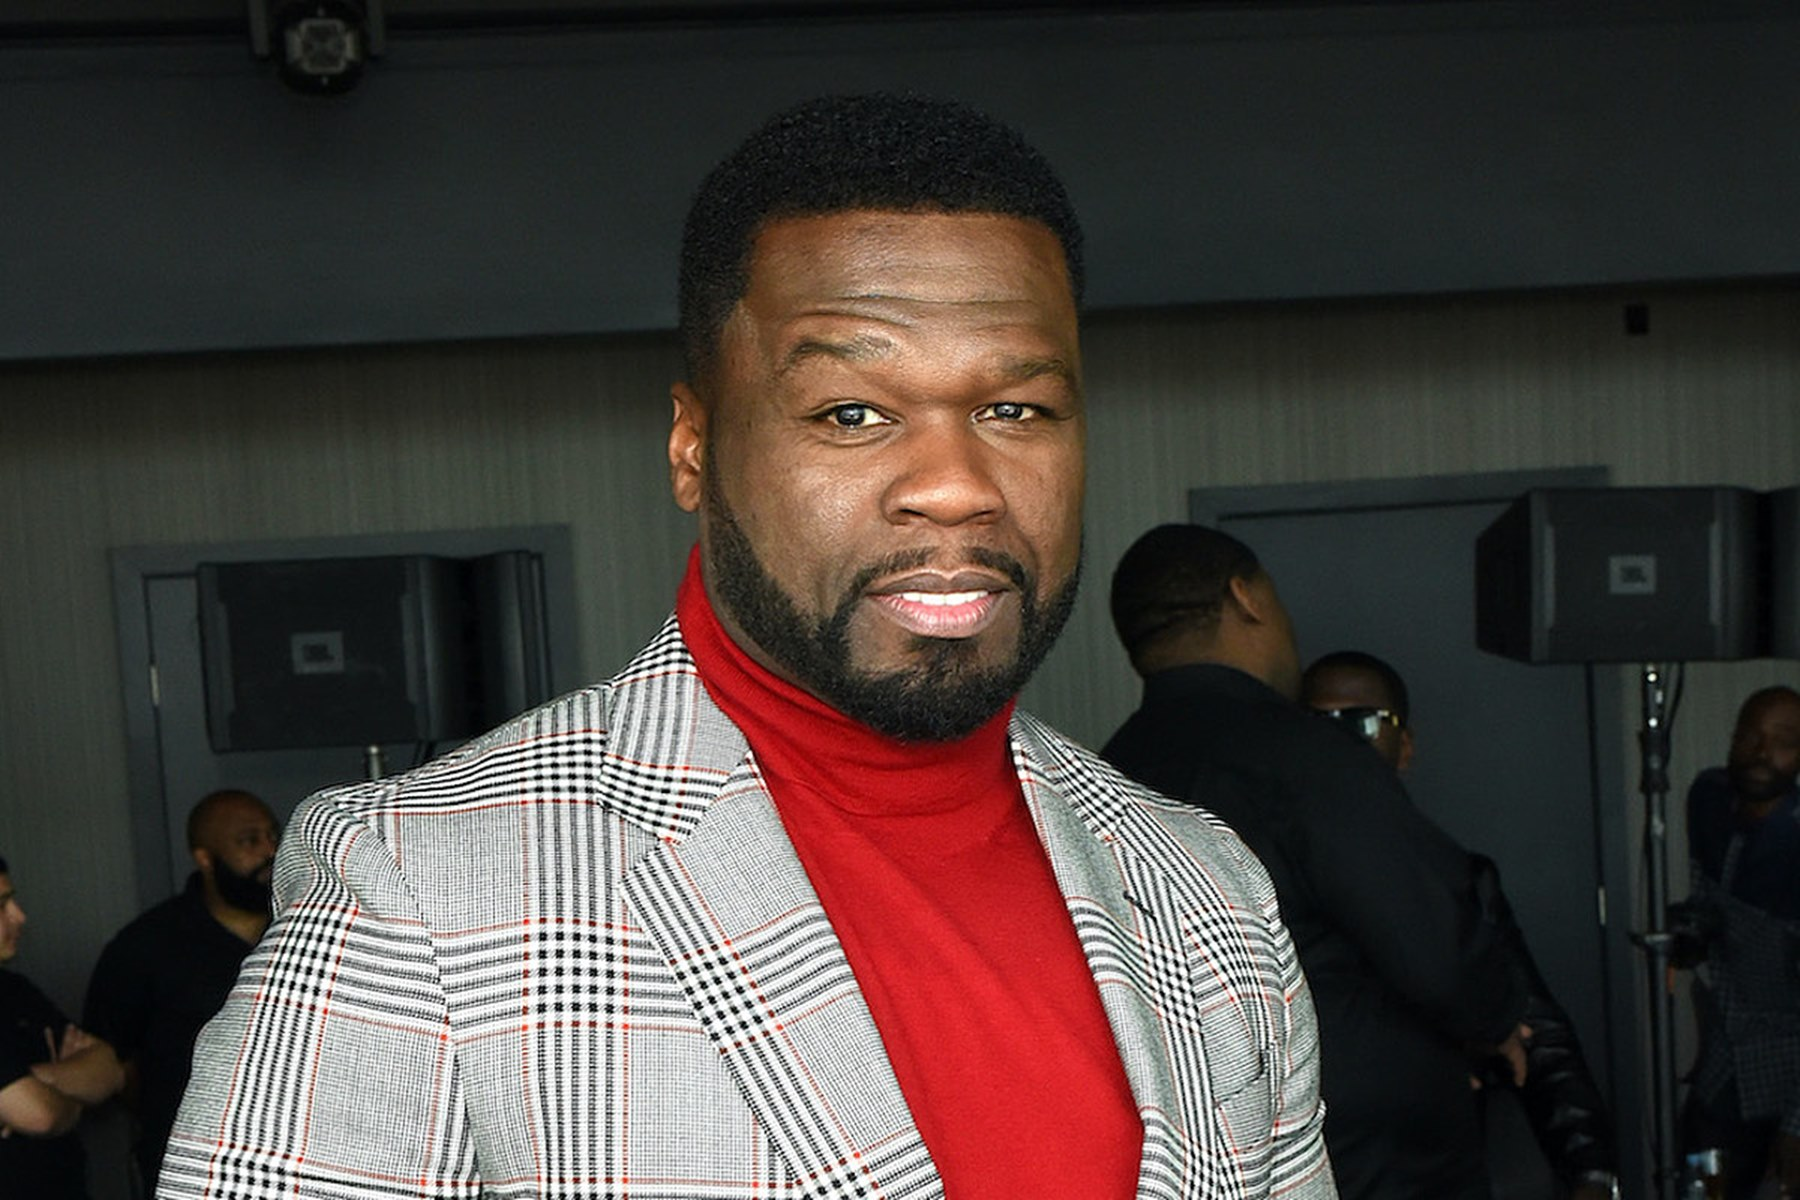 50 Cent Finally Reveals In New Video The Sad Events That Pushed Him To Disown And To Stop Loving